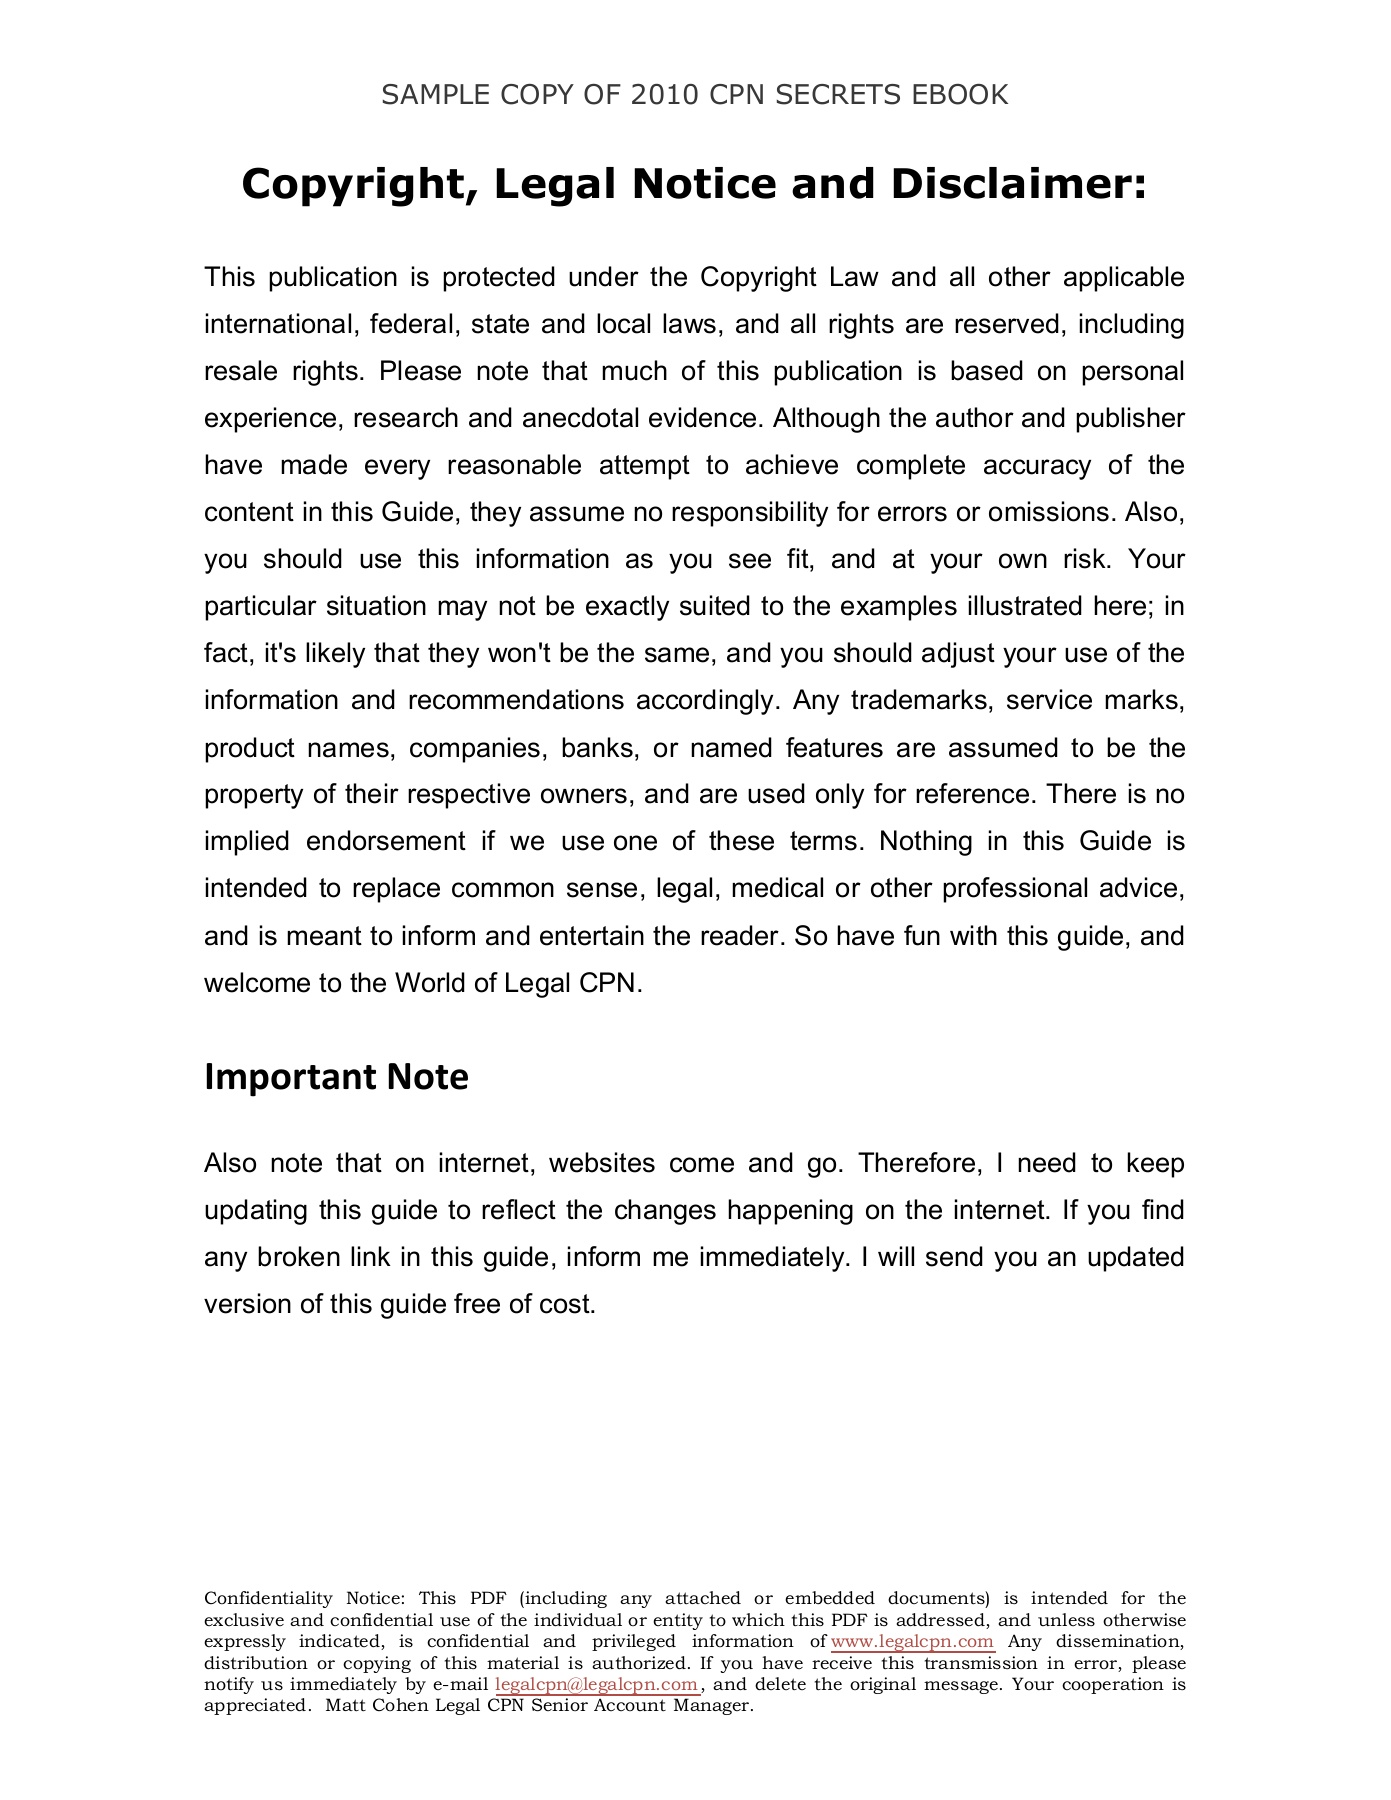 FREE LCPN EBOOK Copyright-3 Pages 1 - 25 - Text Version | AnyFlip